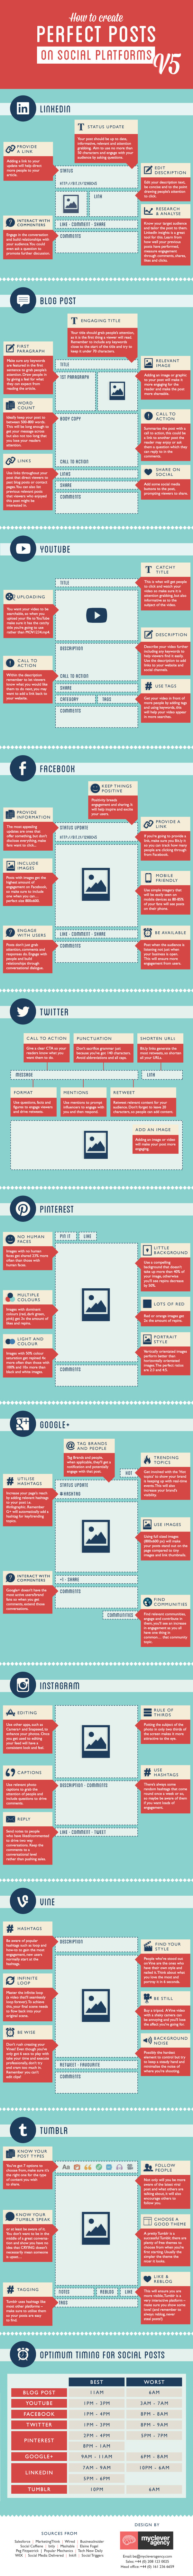 shareable-social-media-infographic